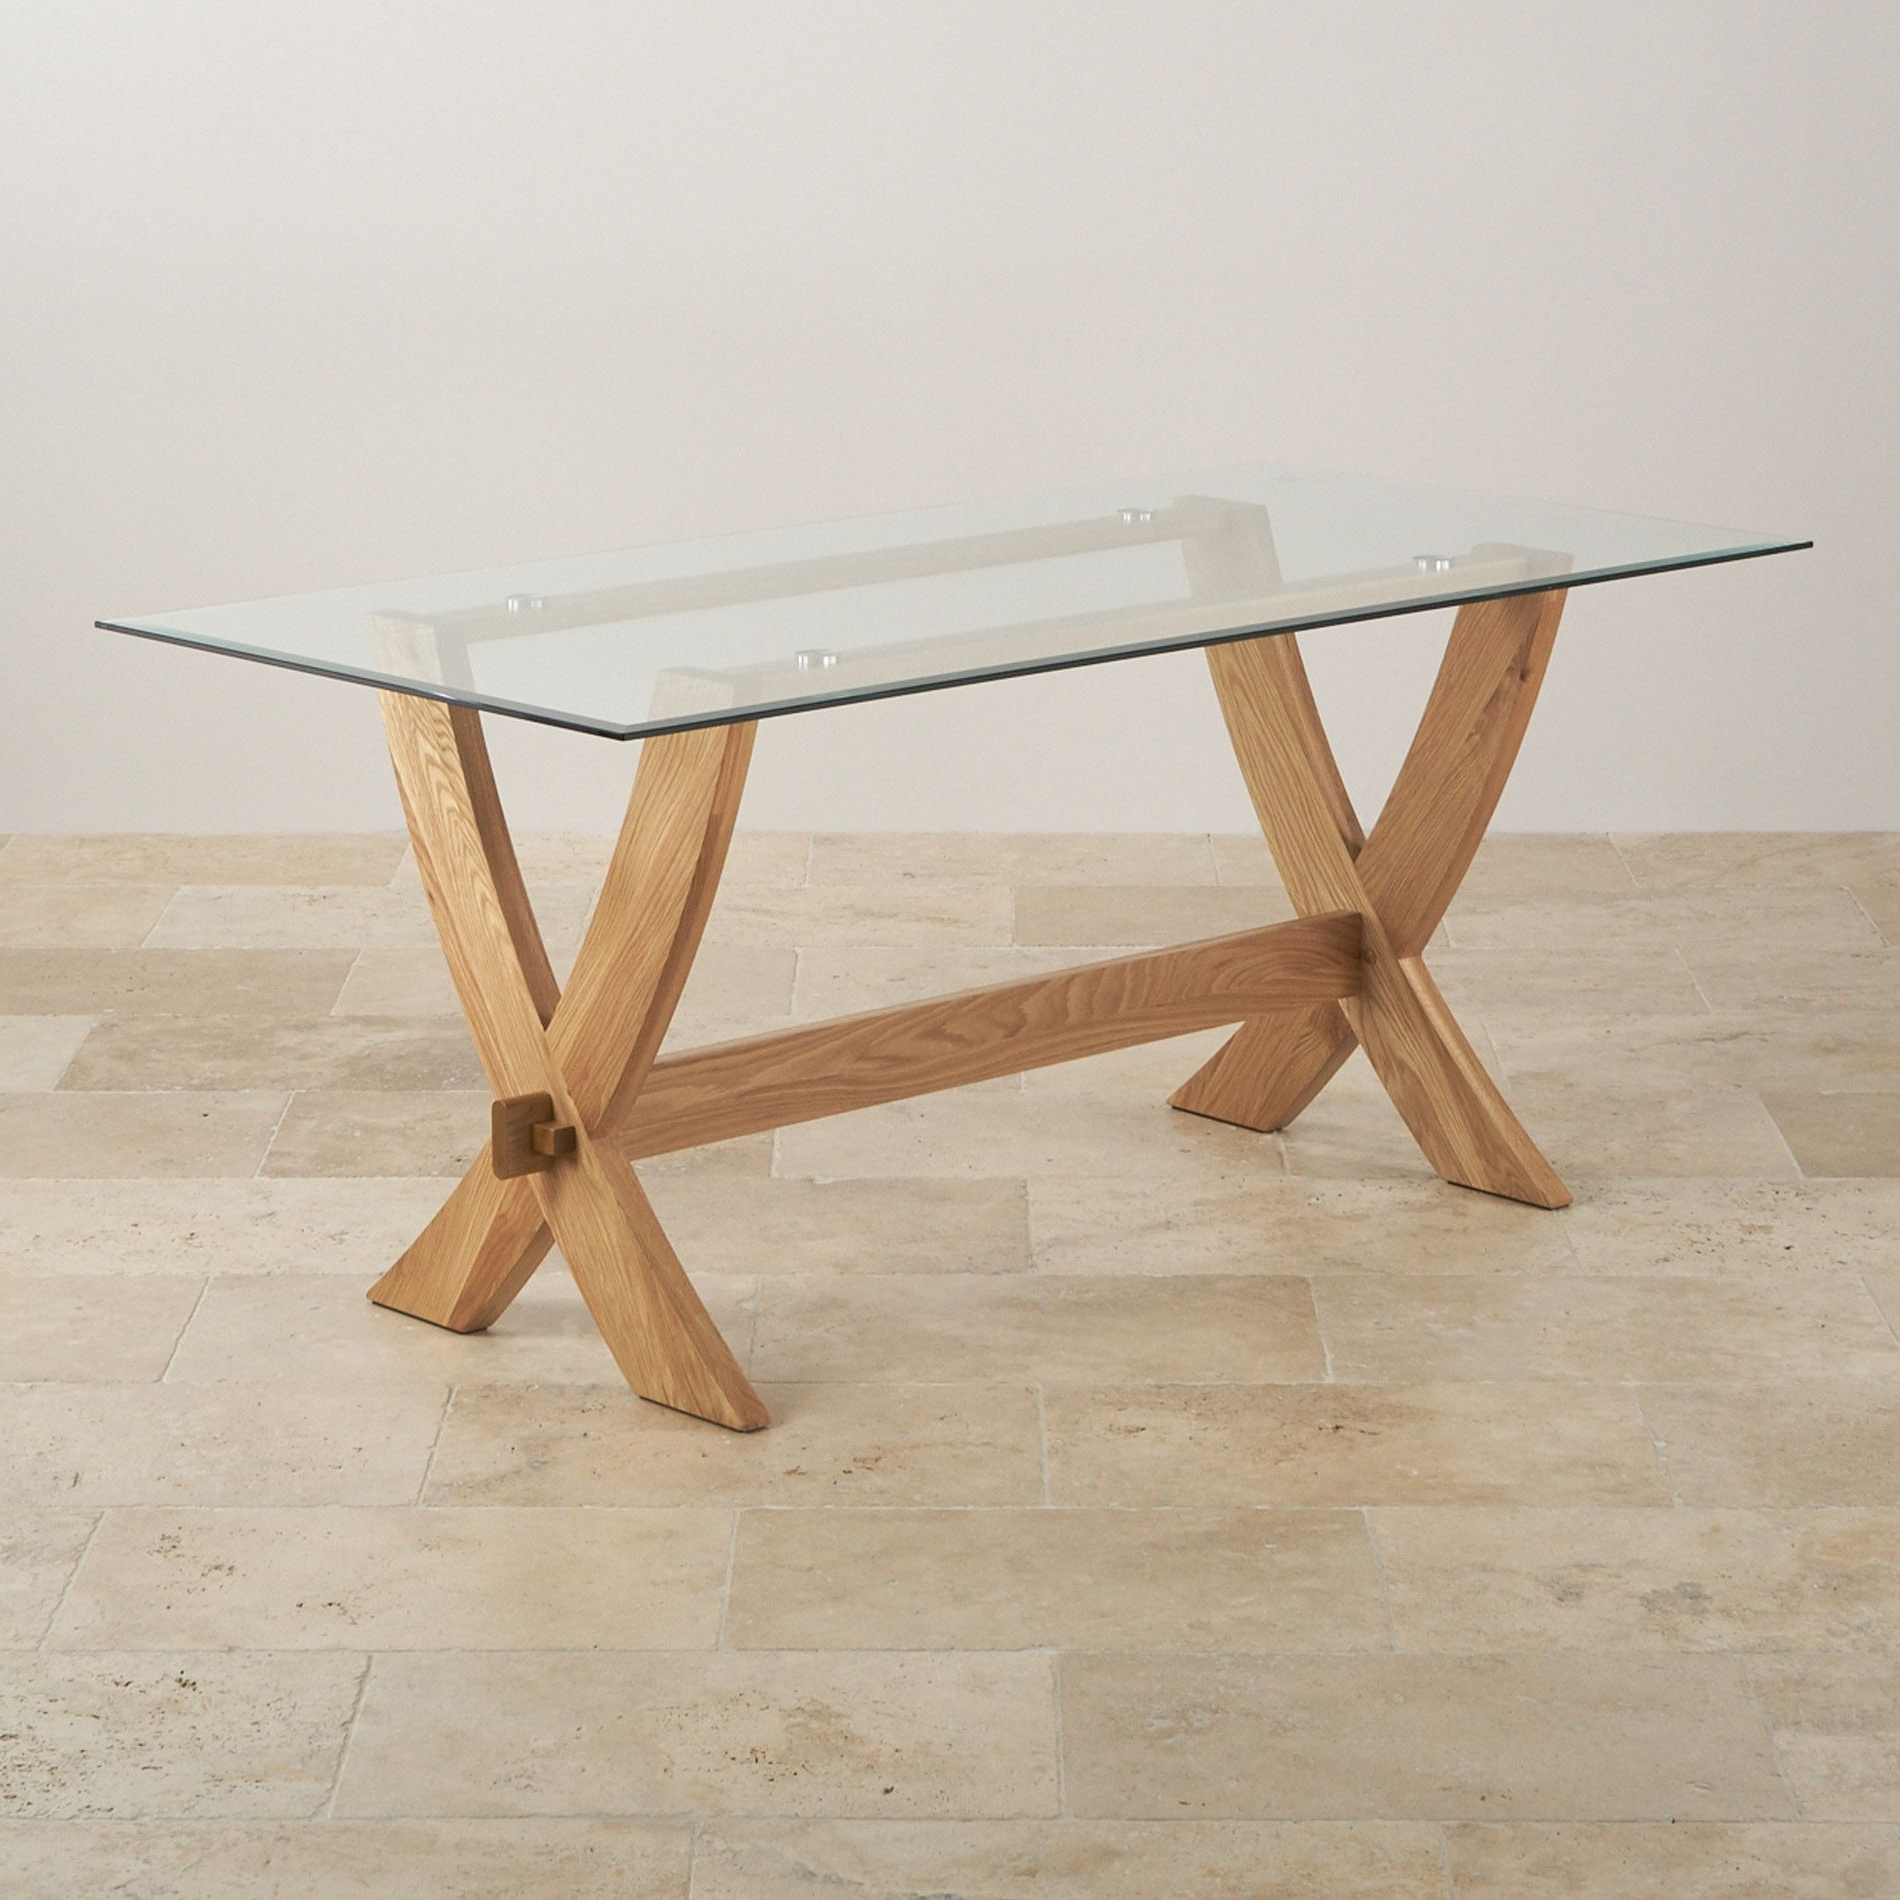 Reflection Glass Top And Natural Solid Oak 6Ft X 3Ft Crossed Leg Inside Most Recent Oak Glass Top Dining Tables (View 21 of 25)